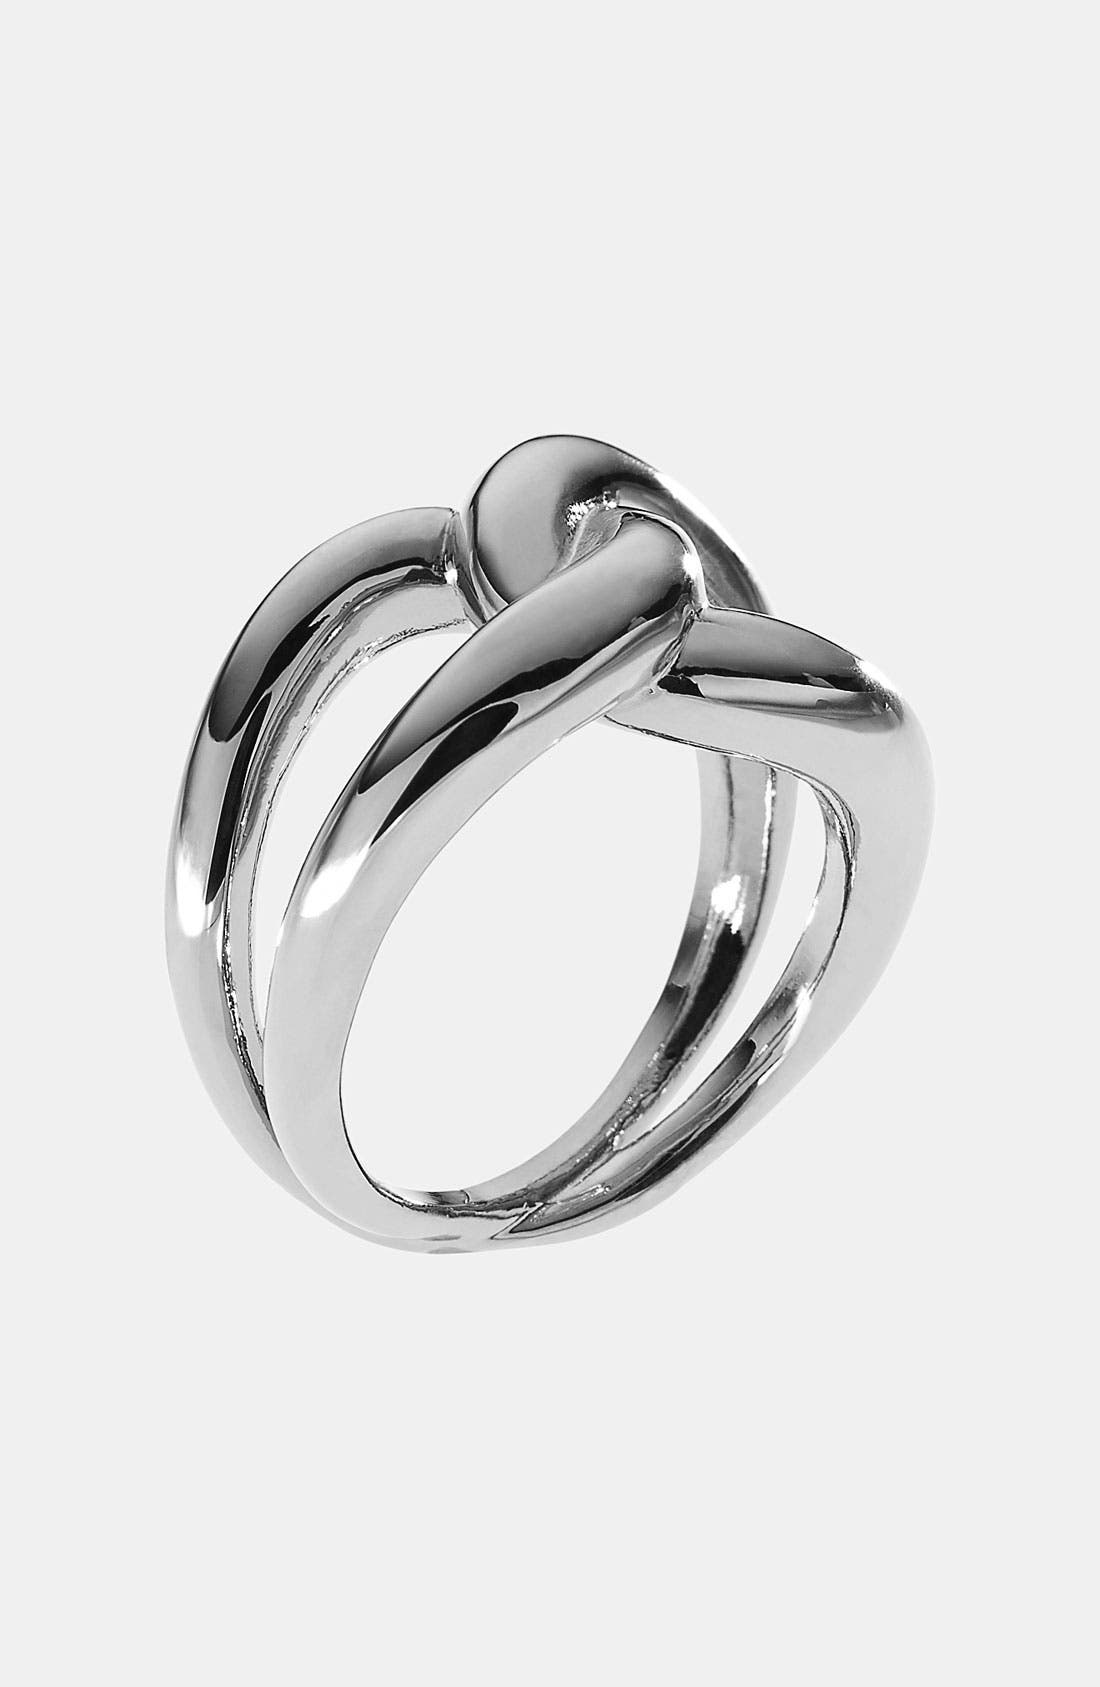 Main Image - Michael Kors 'Equestrian Luxury' Knot Ring